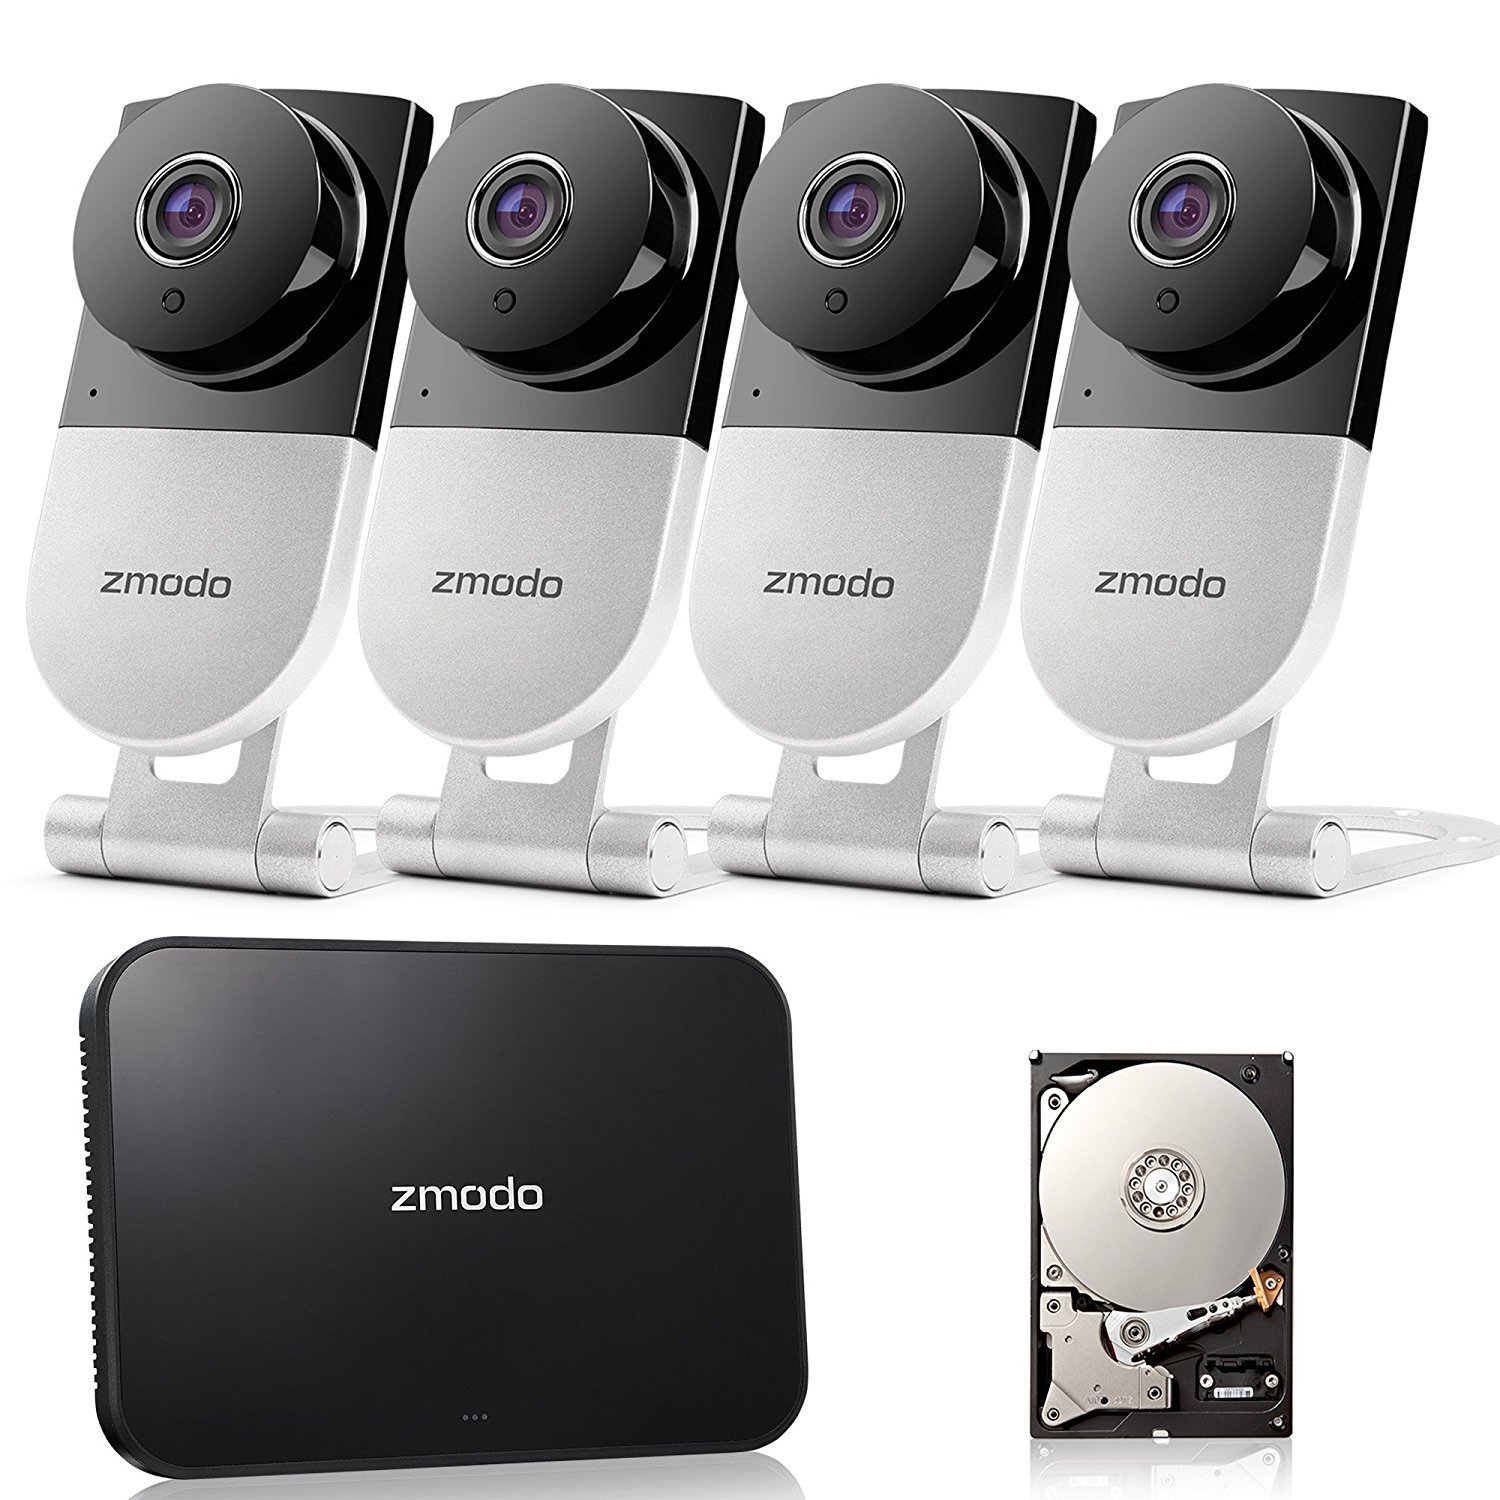 59% OFF Zmodo 720p HD Wireless Smart Home Surveillance Camera System